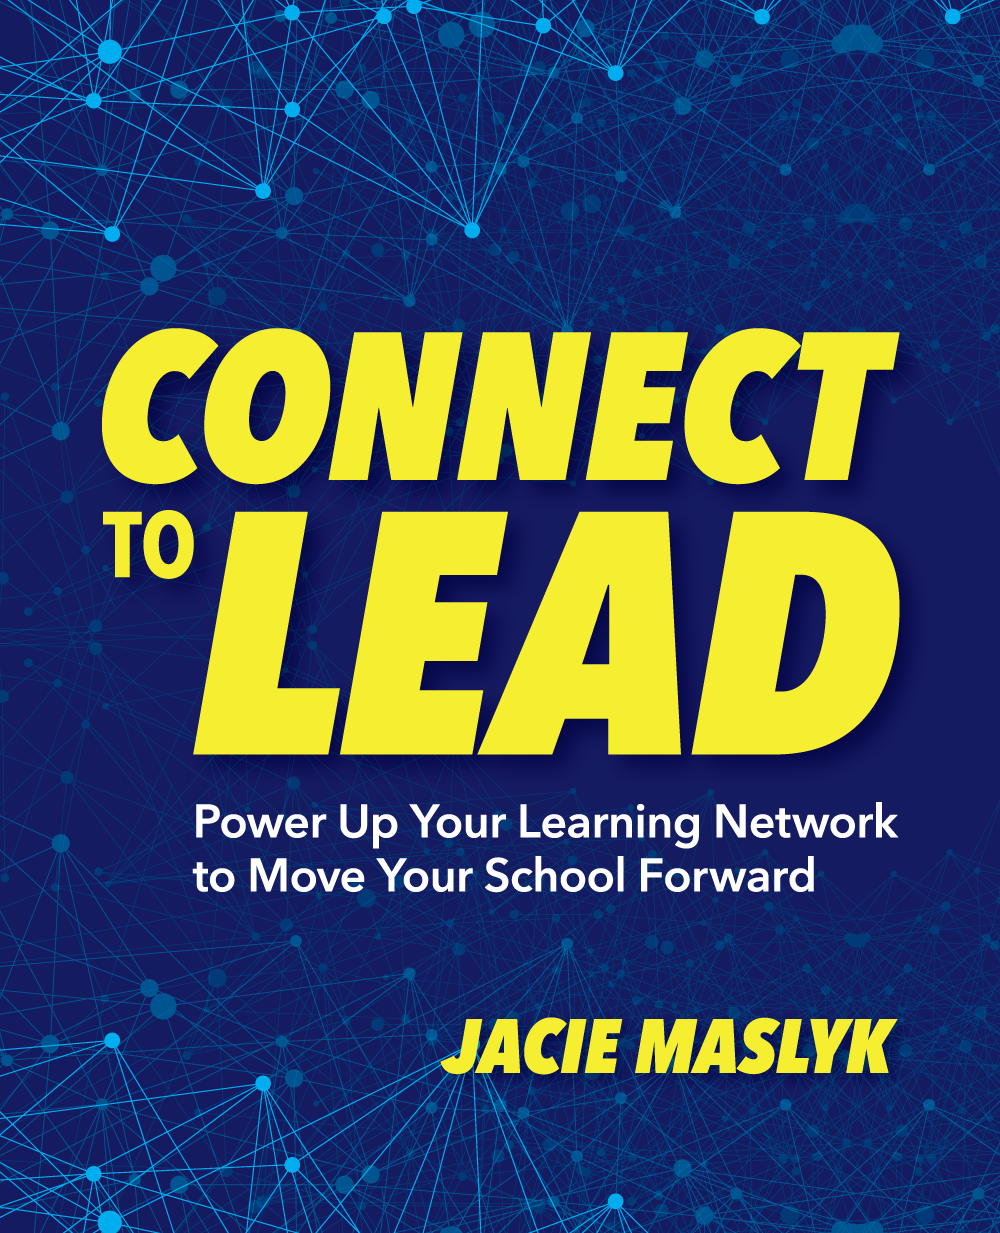 Order Your Copy of Connect to Lead